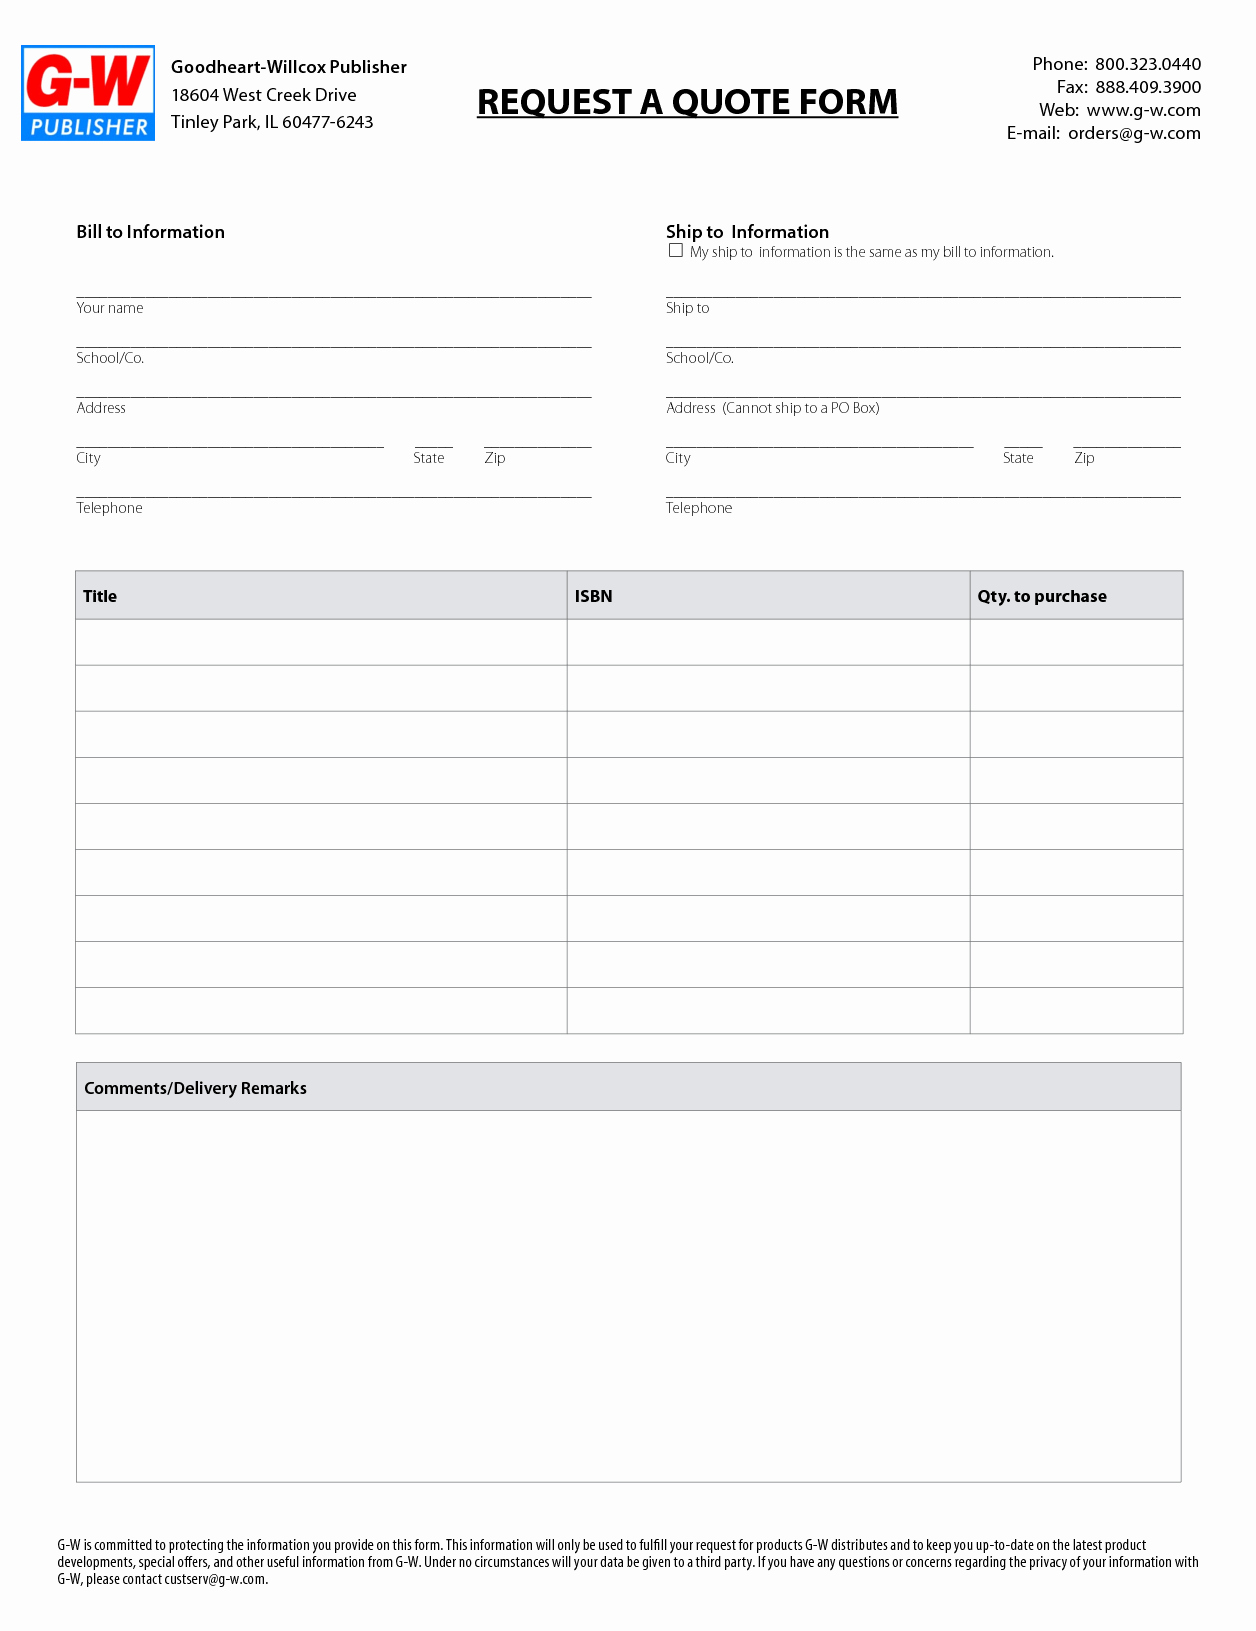 Request for Quote Template Excel Luxury Best S Of Rfq form Template Request for Quote